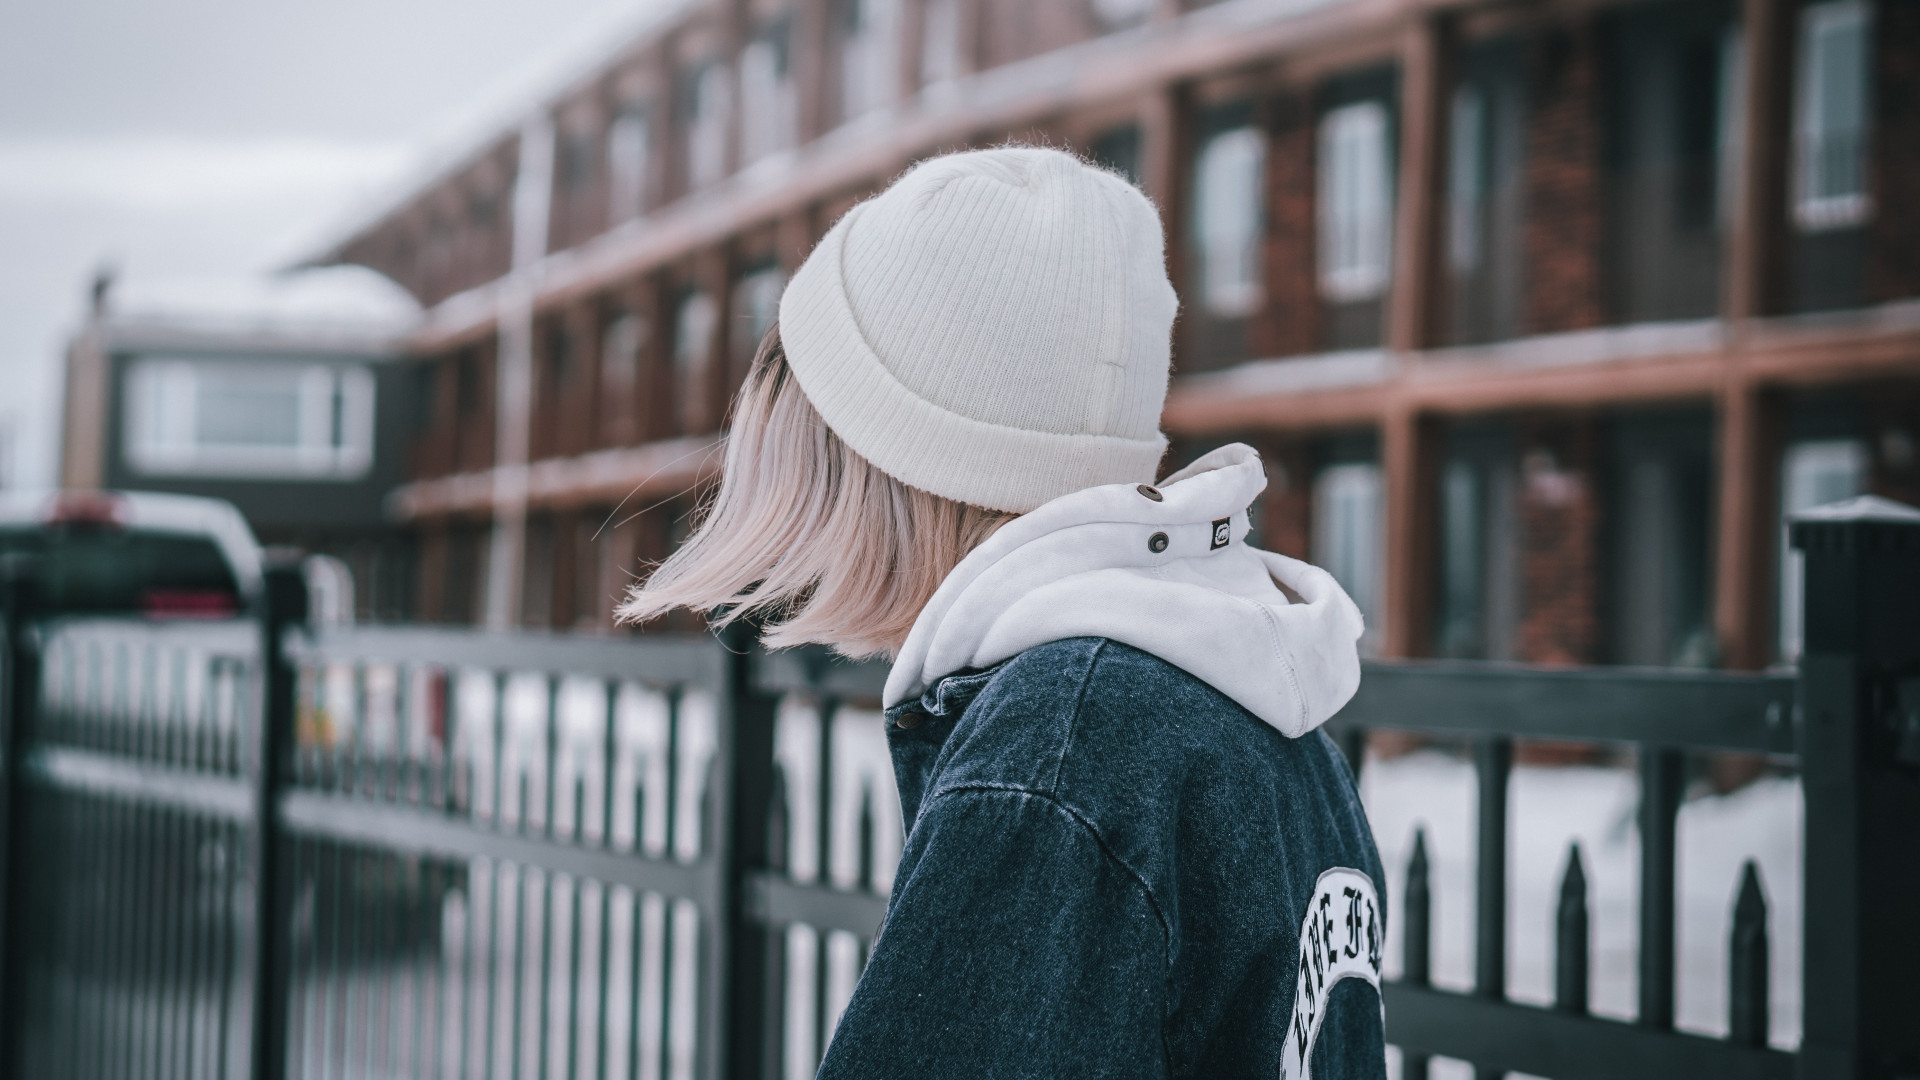 Why Winter Cap Is Best Accessory For Cold Days?